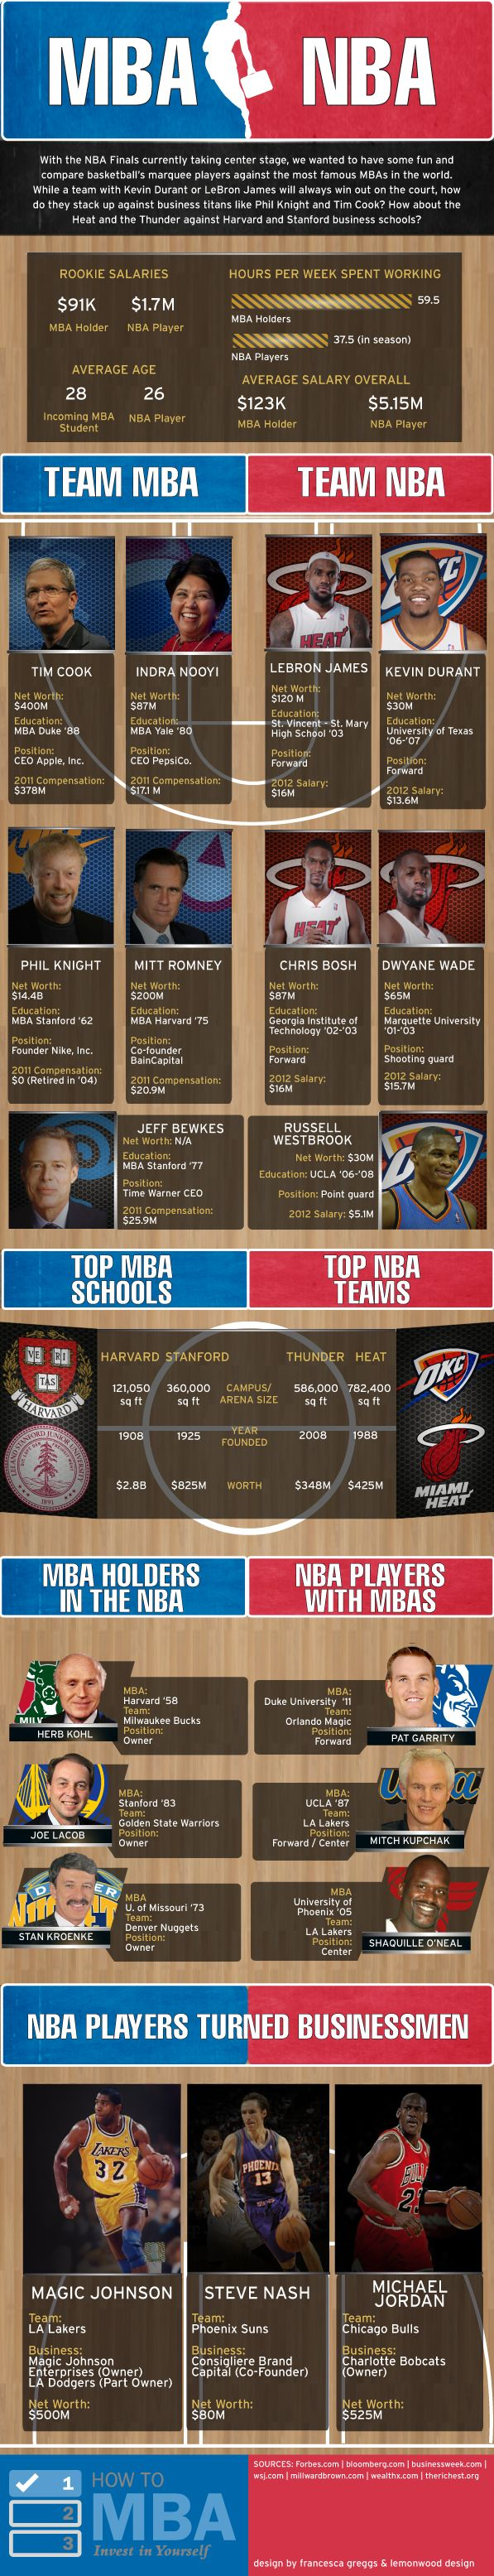 Infographic-As-the-two-best-teams-in-the-NBA Infographic : As the two best teams in the NBA, the Miami Heat and the Oklahoma City Thunder, ...